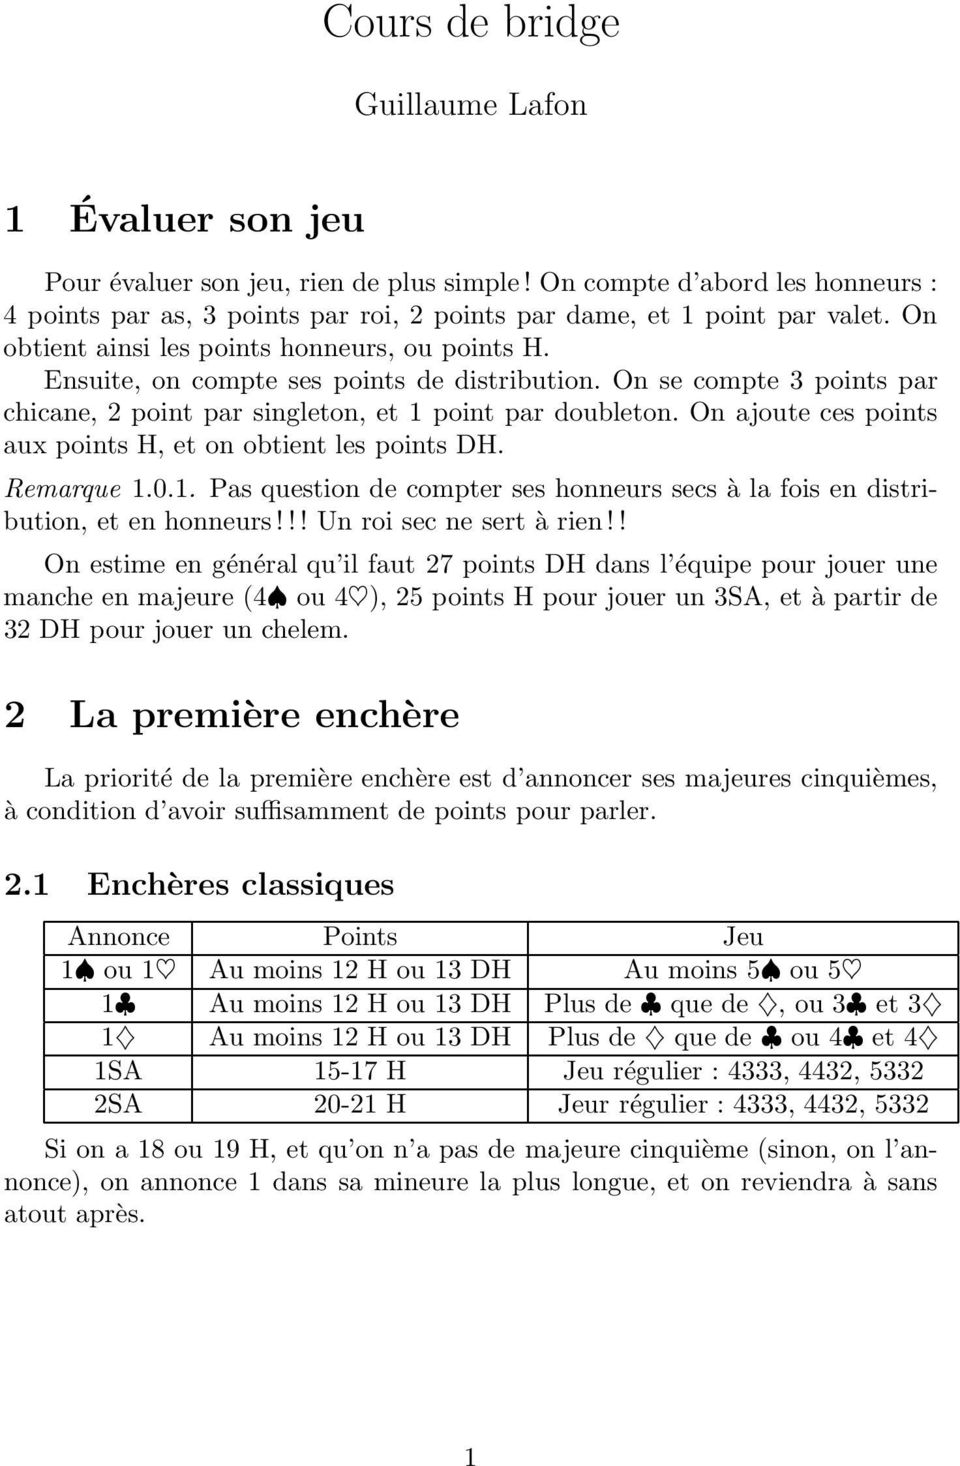 Ensuite, on compte ses points de distribution. On se compte 3 points par chicane, 2 point par singleton, et 1 point par doubleton. On ajoute ces points aux points H, et on obtient les points DH.